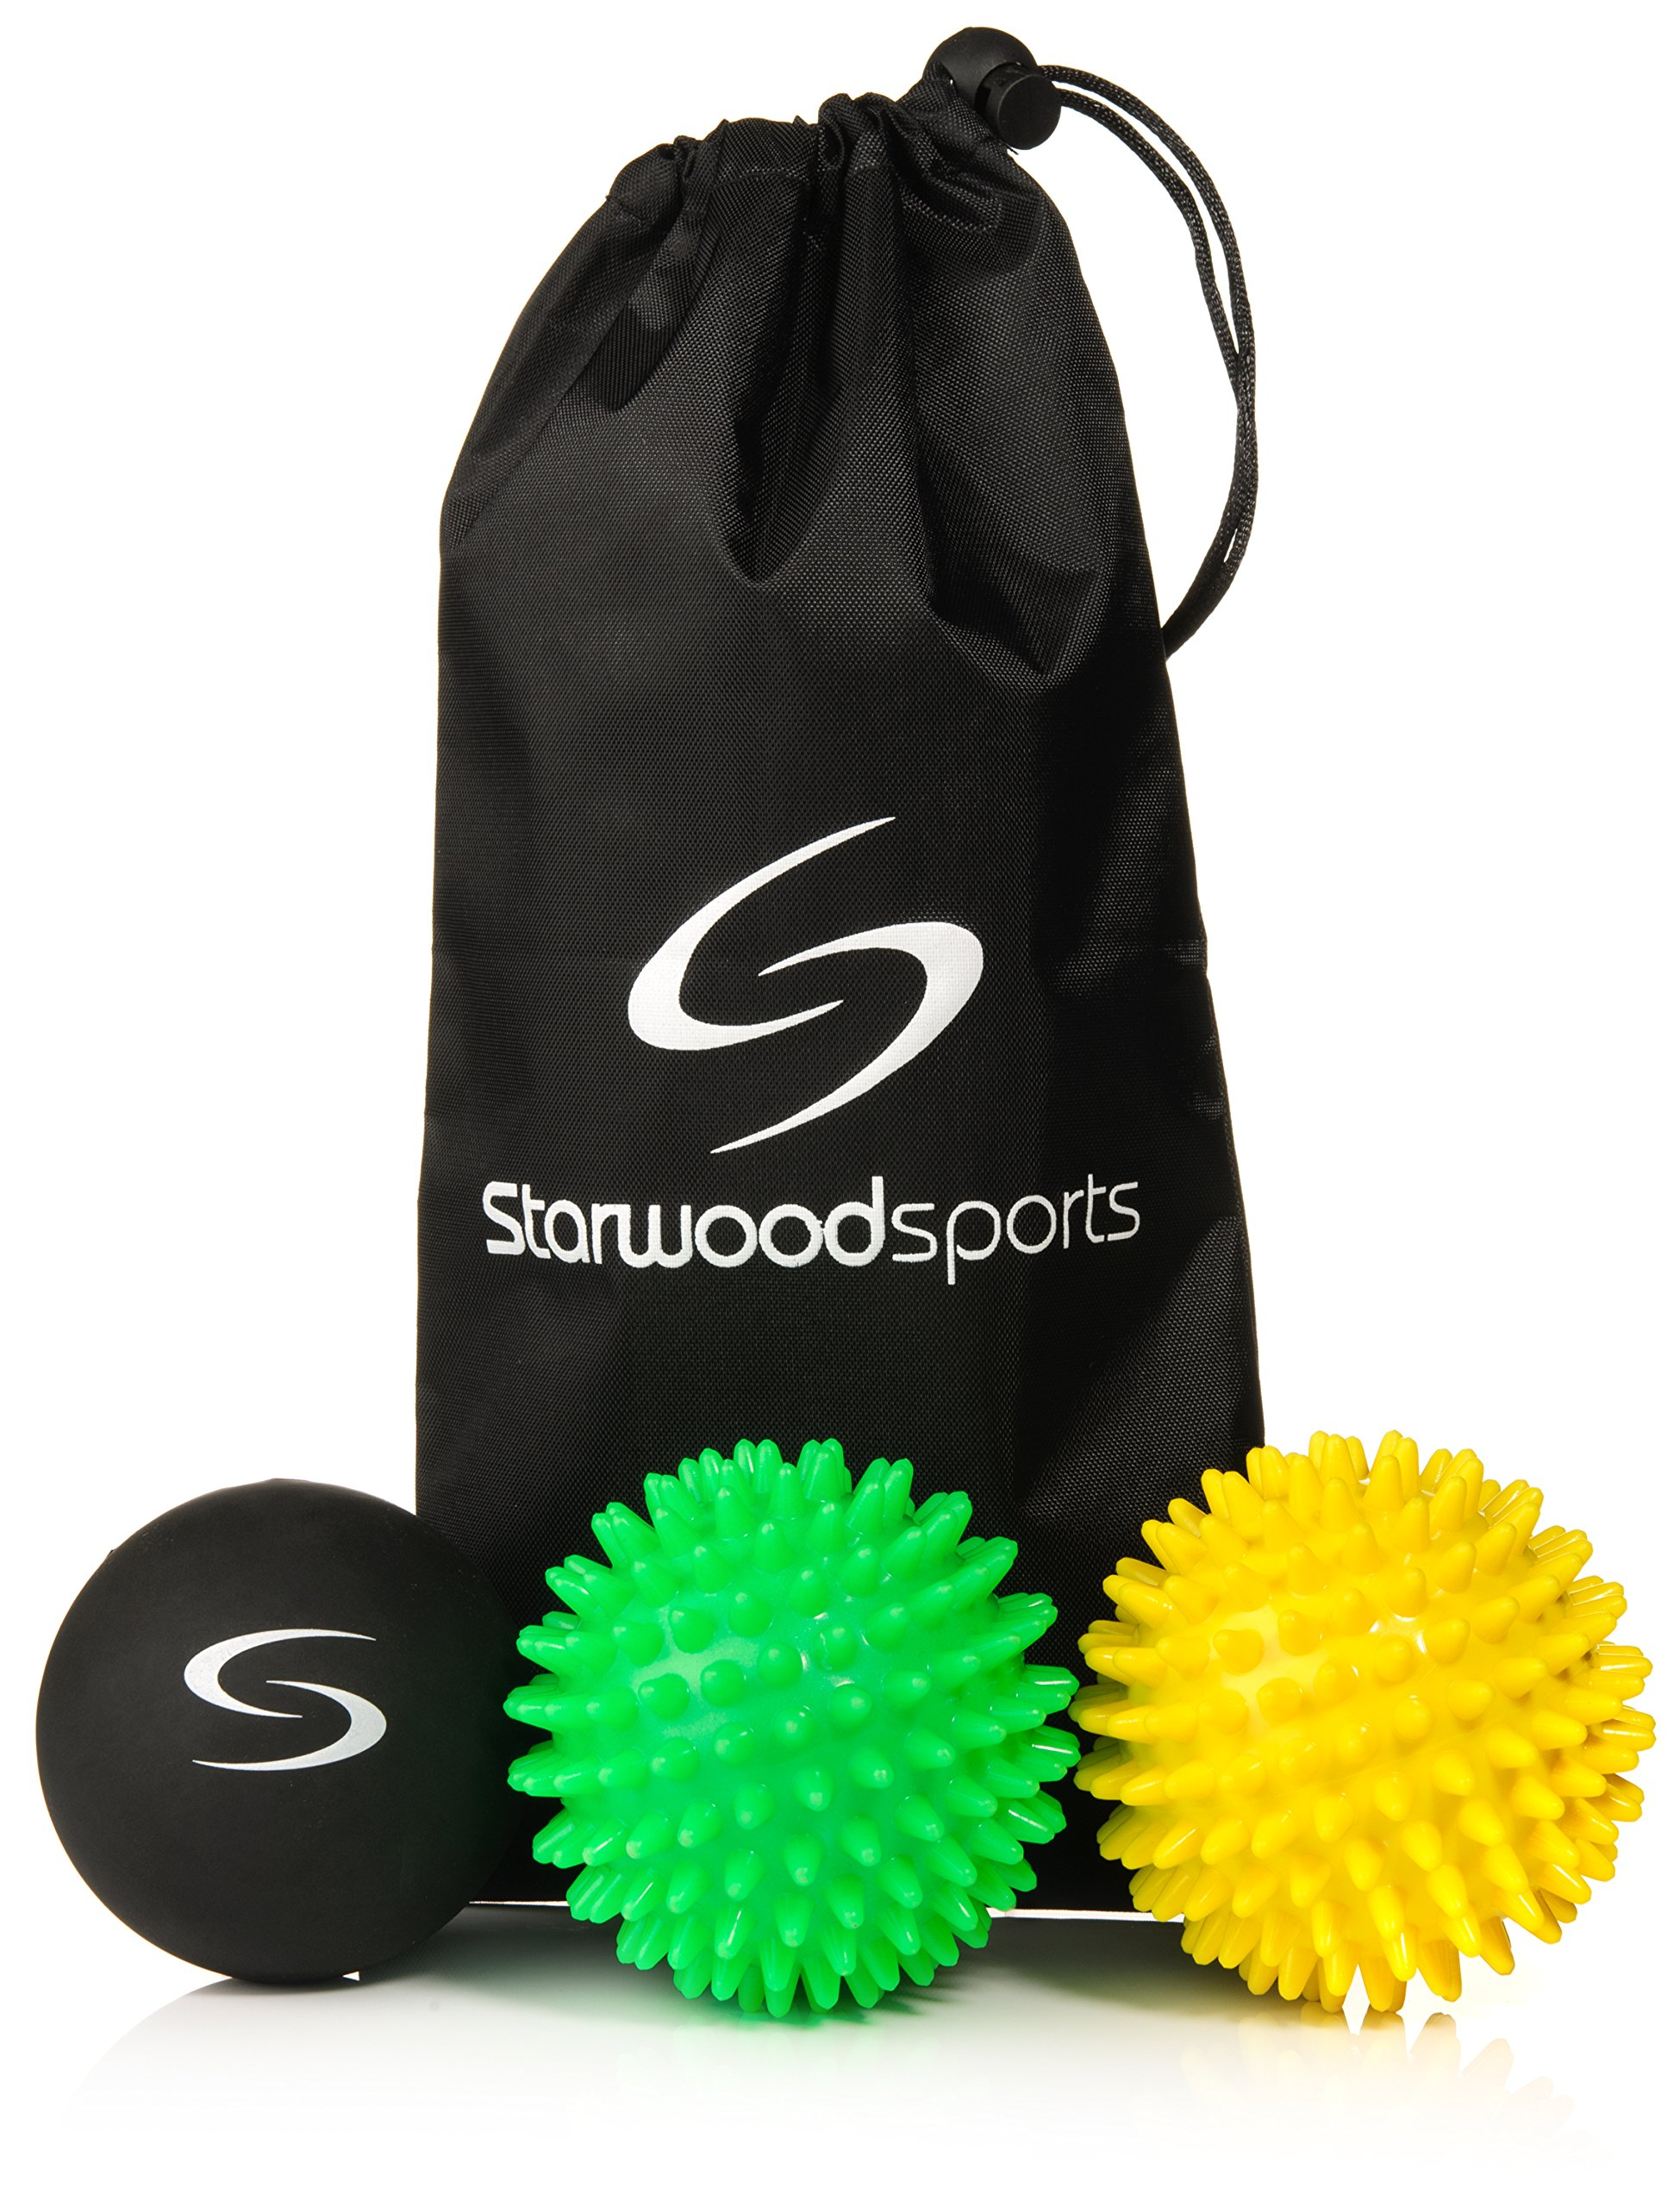 Starwood Sports Massage Ball Set - 6 cm Lacrosse Ball, 7 cm Very Firm Spiky, 7 cm Medium Firm Spiky + Carry Bag